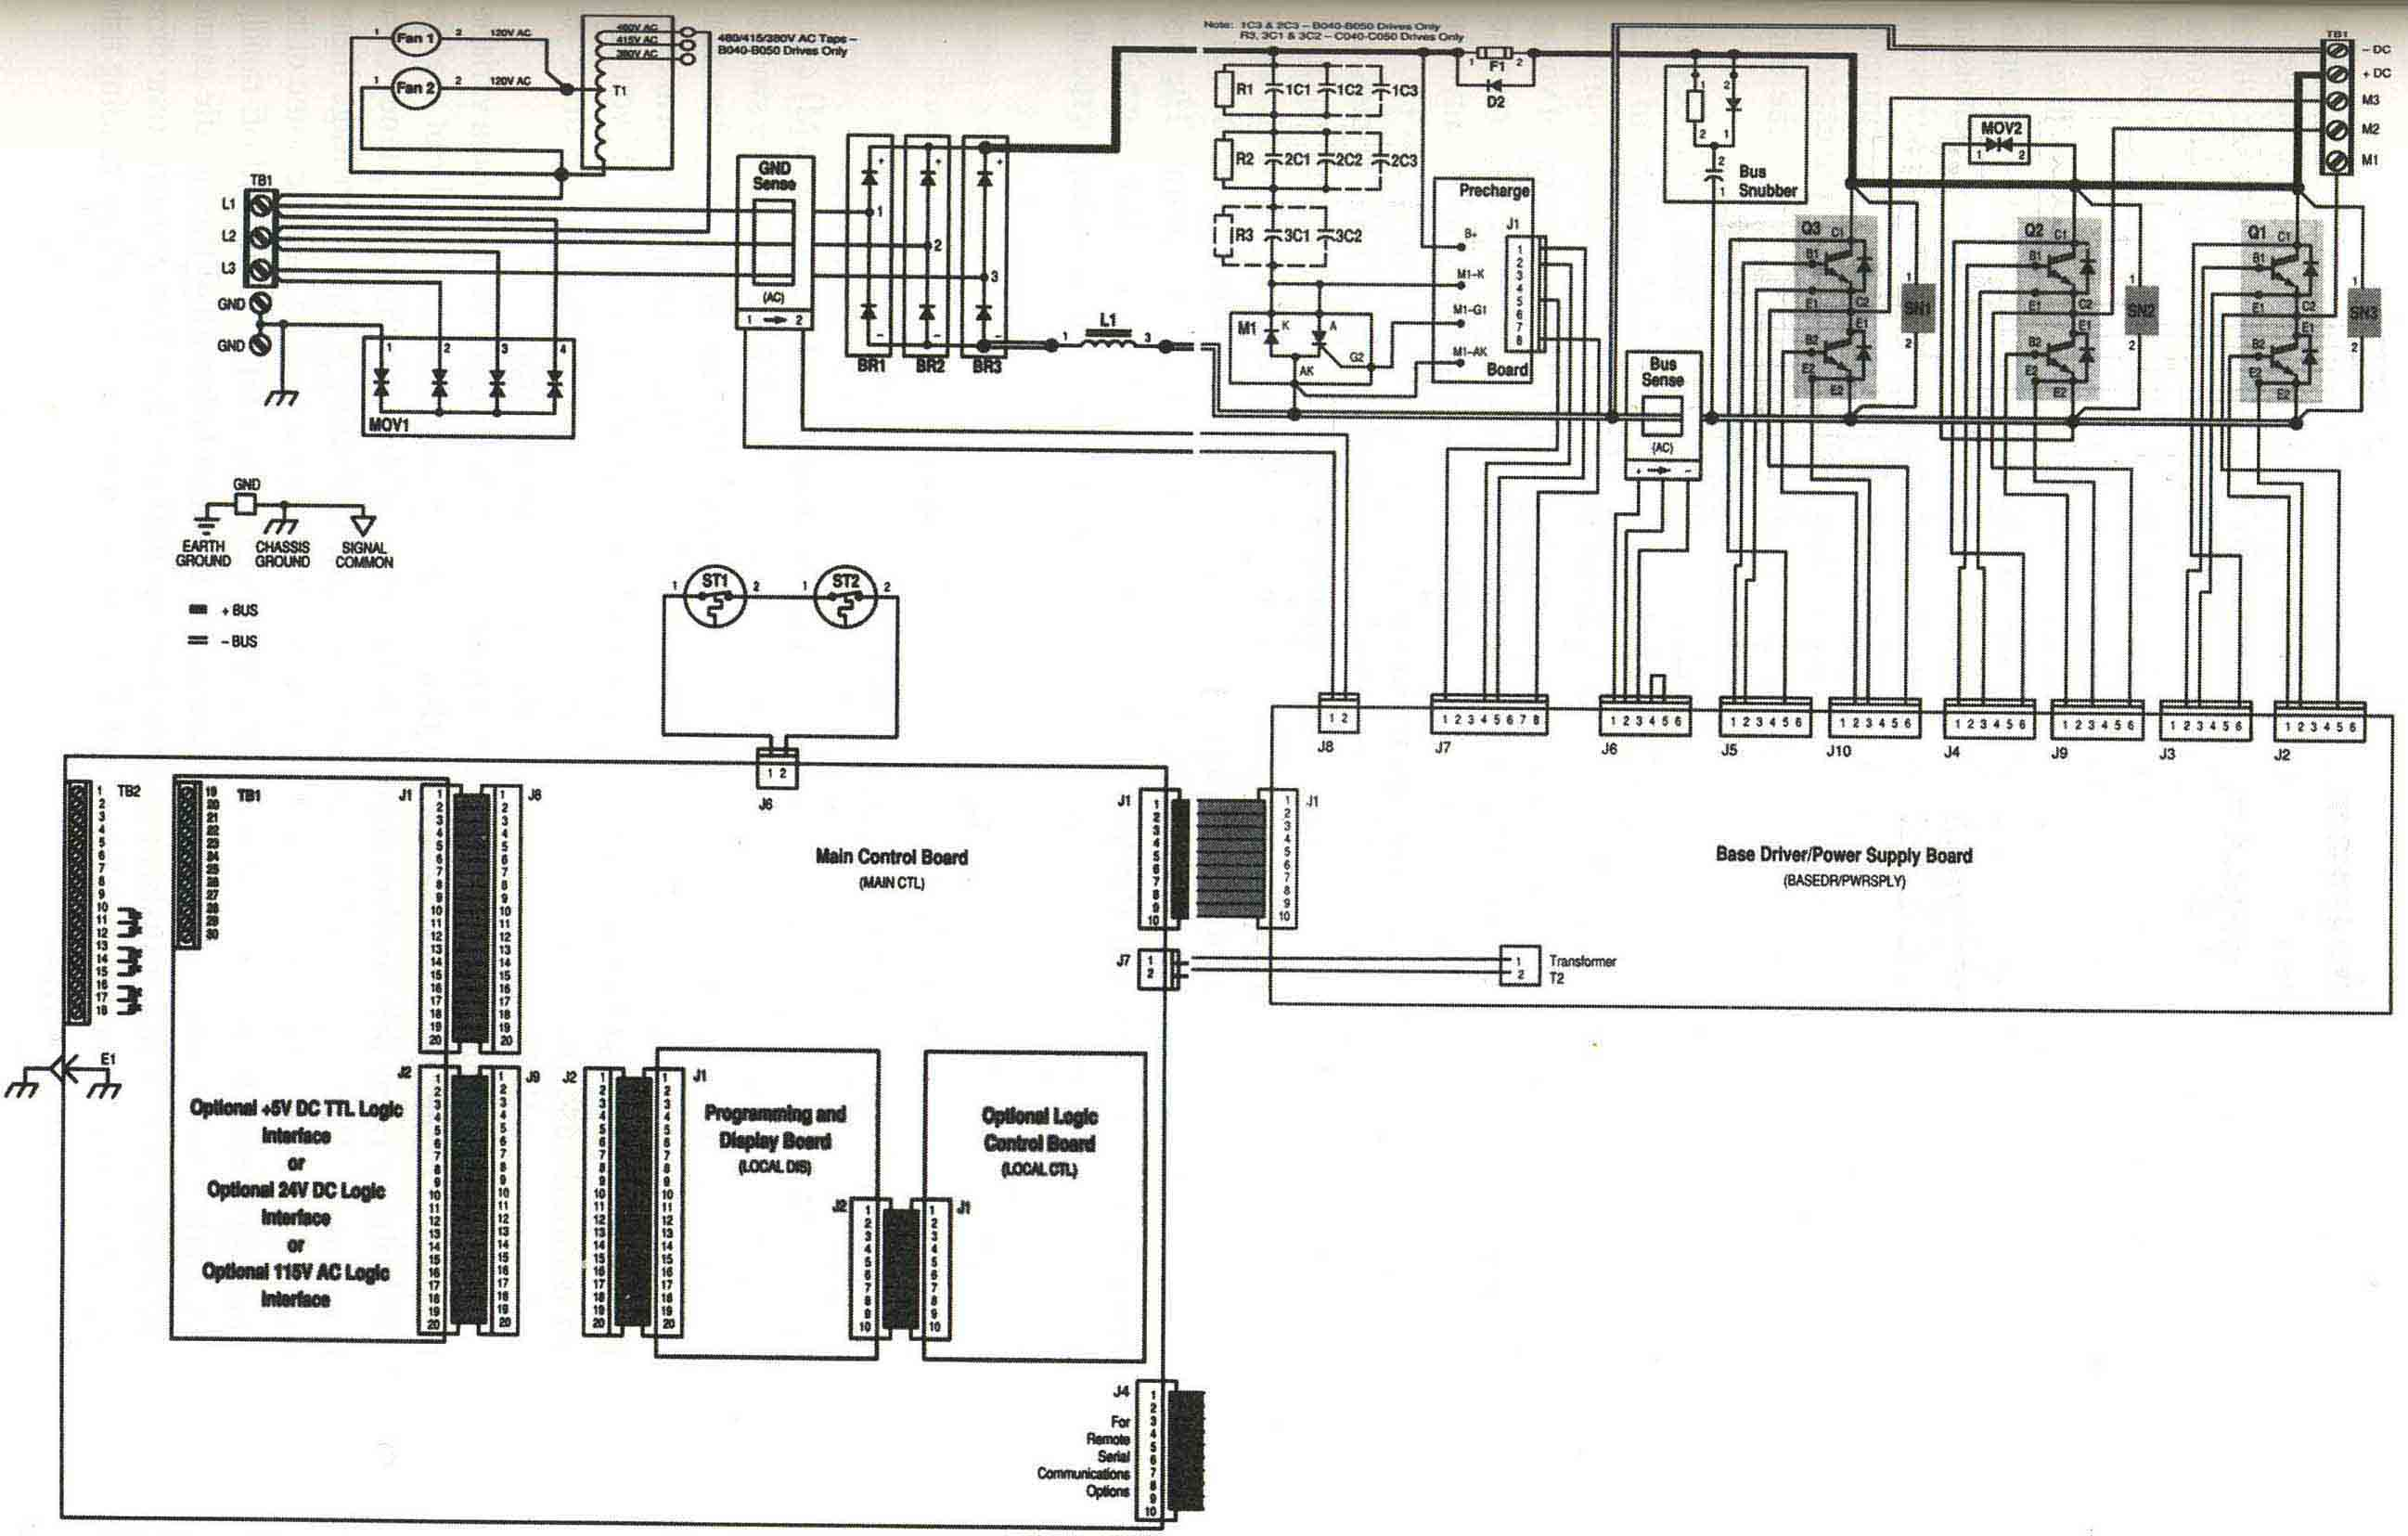 Allen Bradley 1336 schematic solid state circuits for variable frequency drives variable frequency drive wiring diagram at soozxer.org